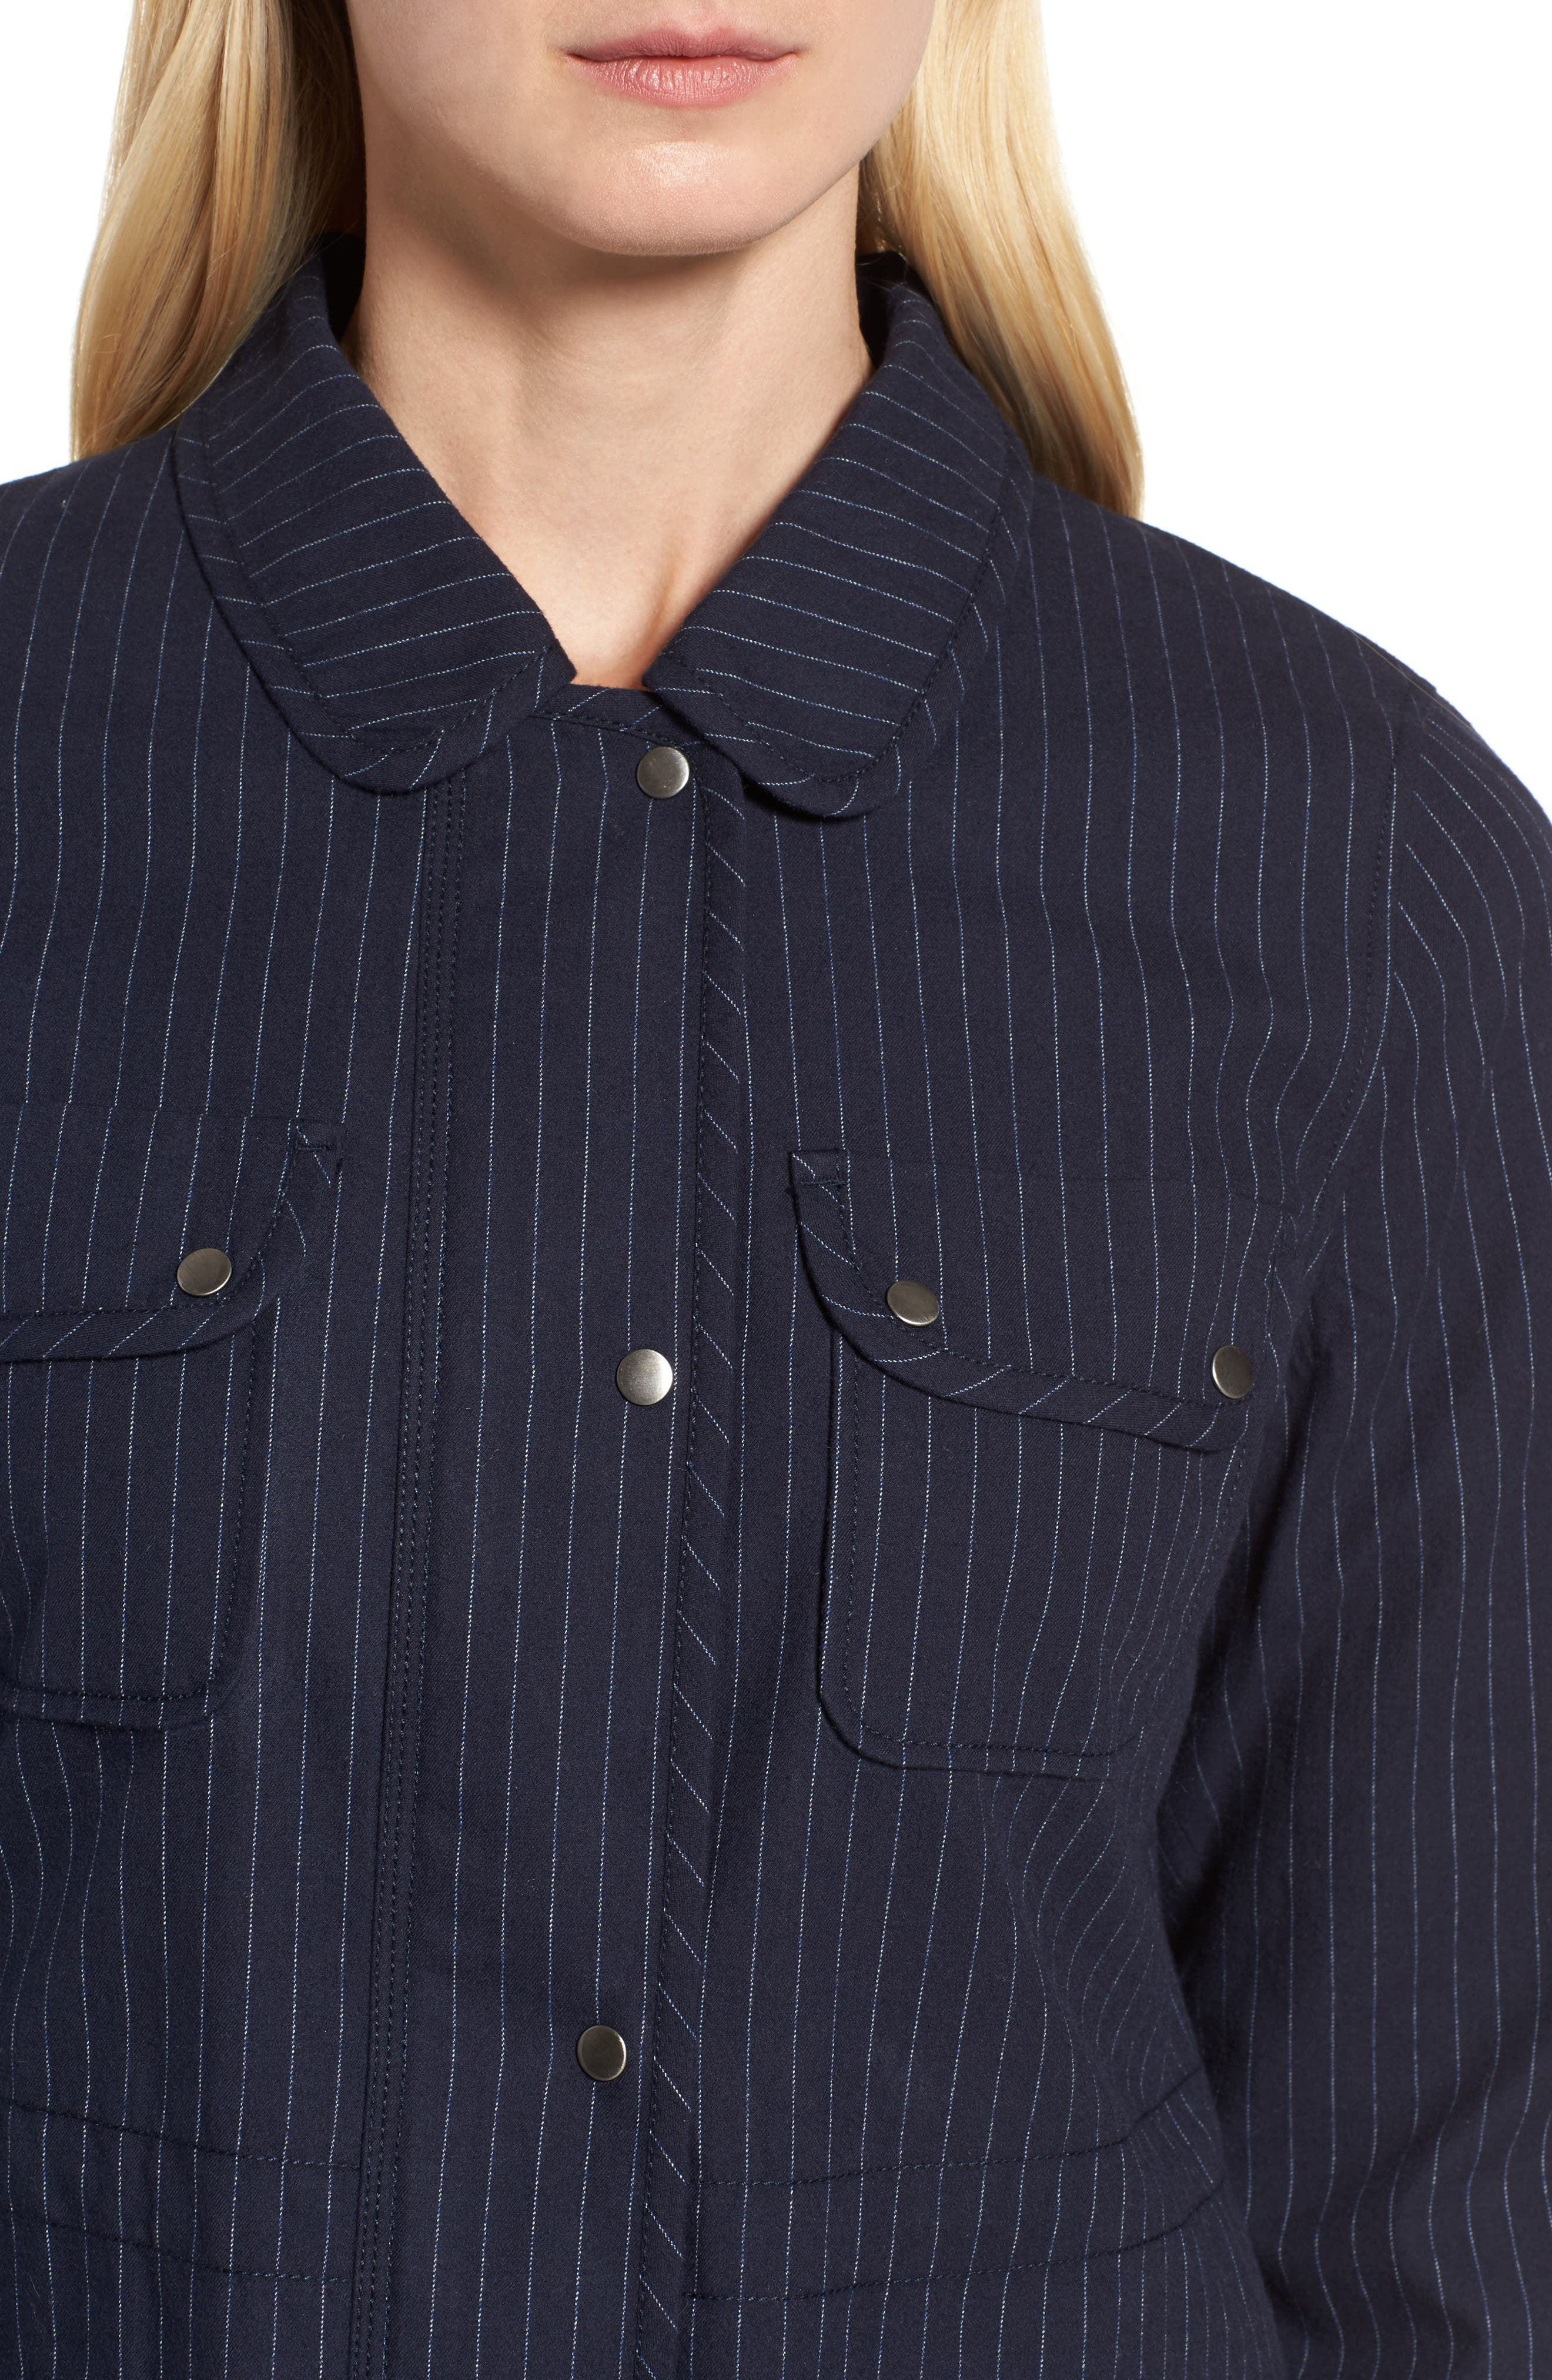 Pinstripe Utility Jacket,                             Alternate thumbnail 4, color,                             Navy- Ivory Pinstripe